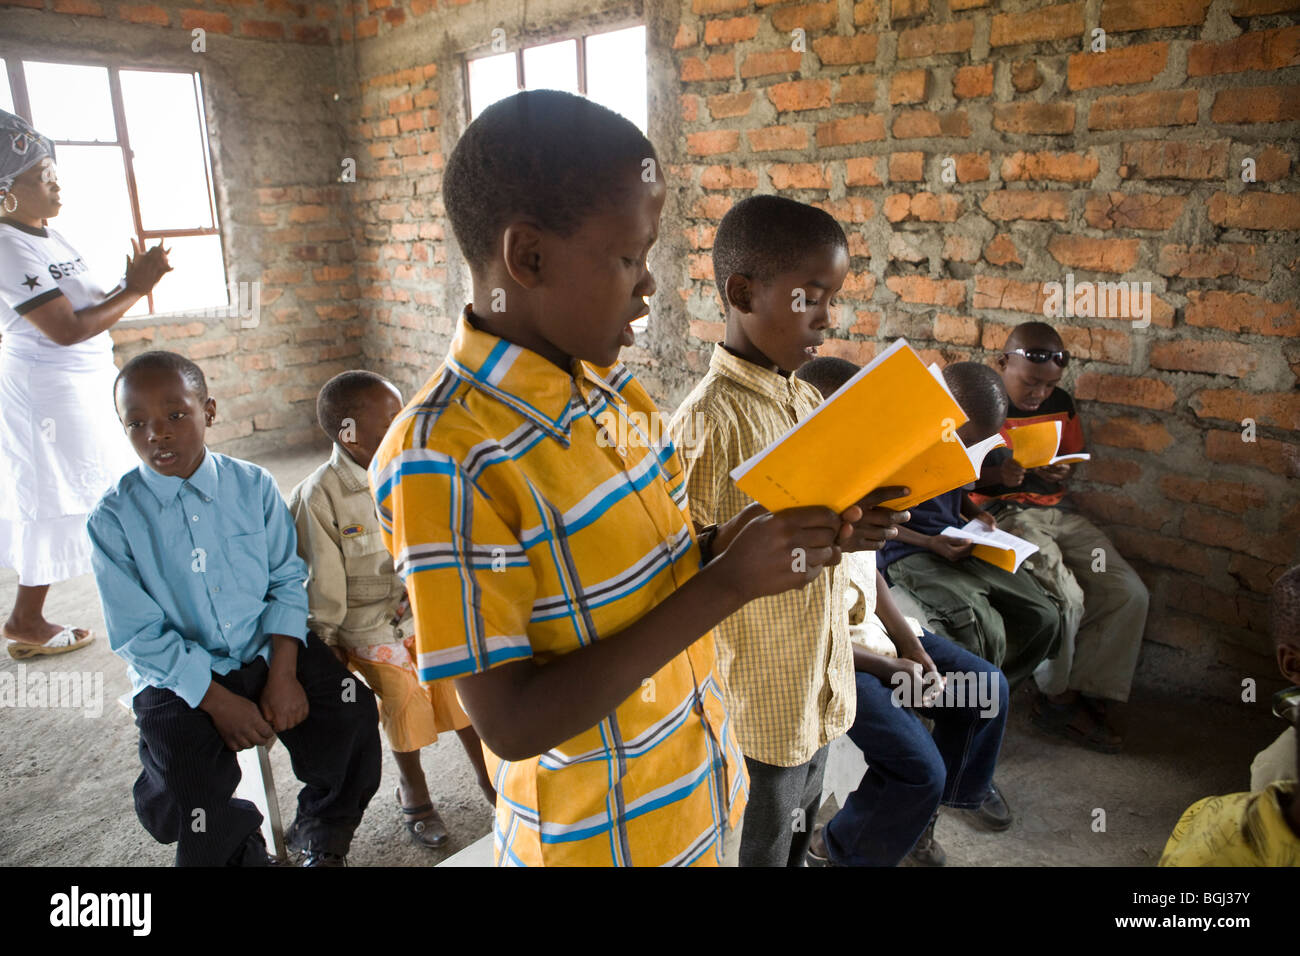 Children at a church service, Kilimanjaro Region, Tanzania, East Africa. - Stock Image